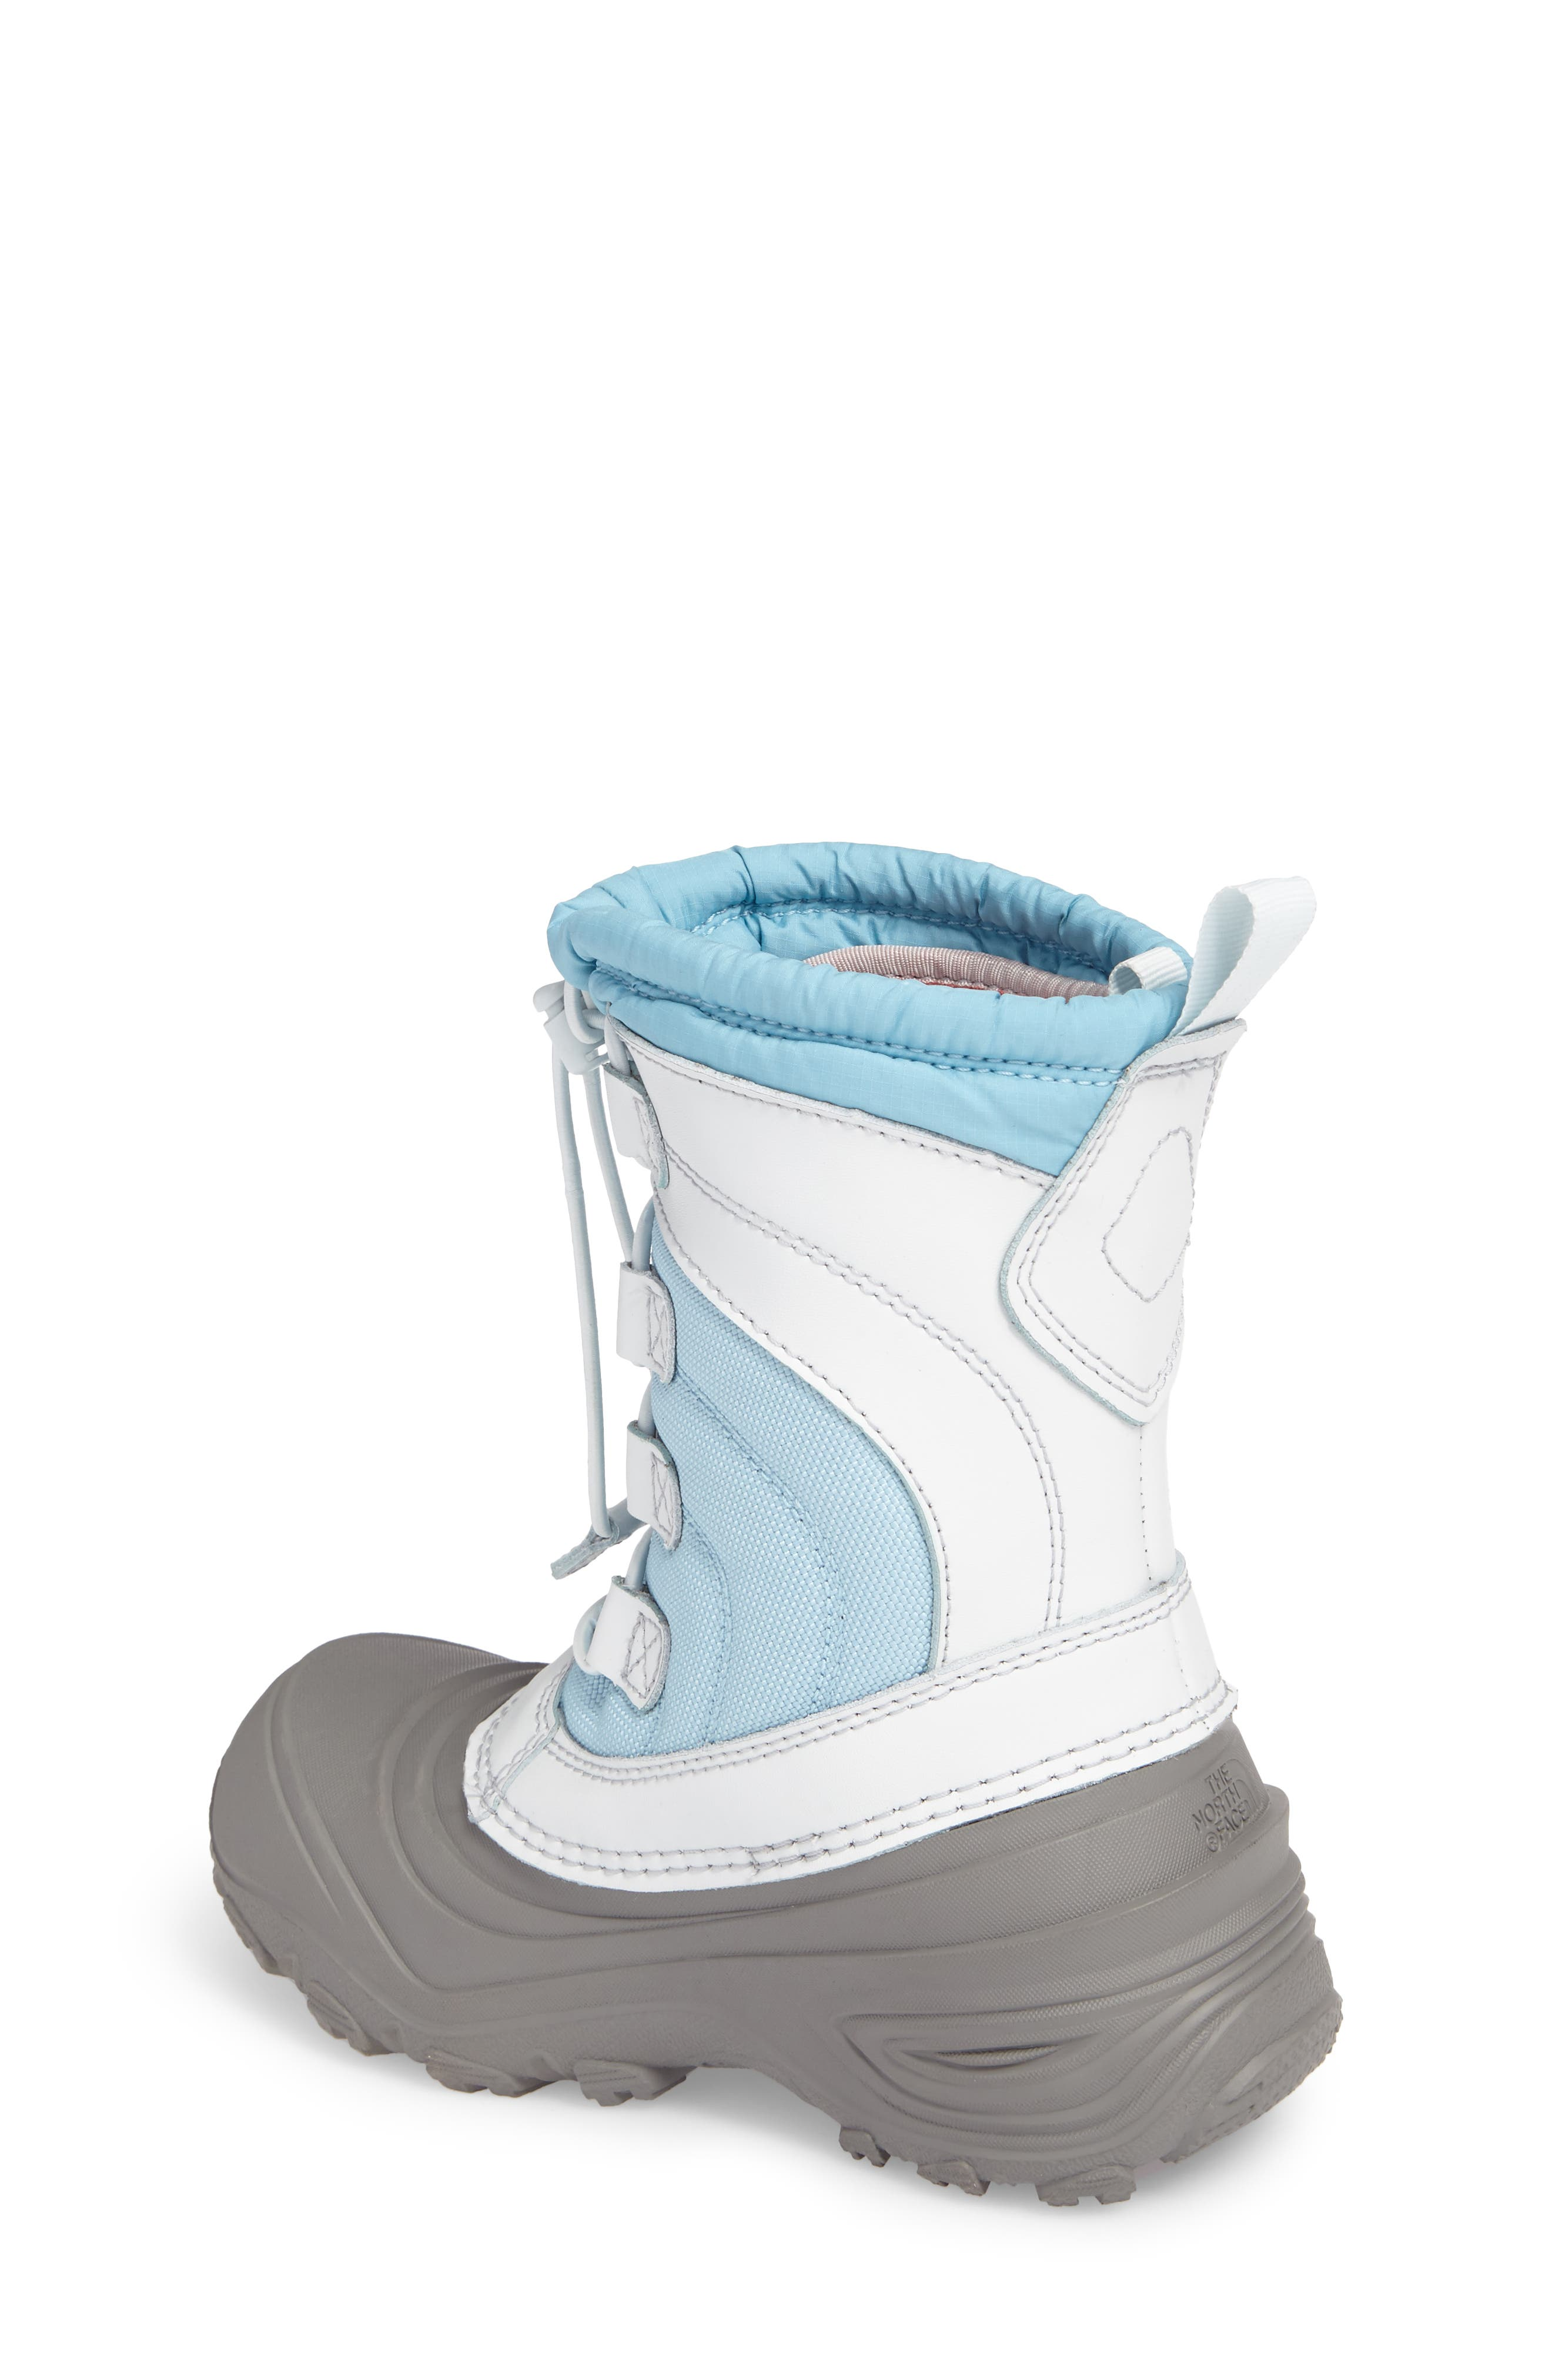 Alpenglow IV Waterproof Insulated Winter Boot,                             Alternate thumbnail 2, color,                             Blizzard Blue/ Ice Blue